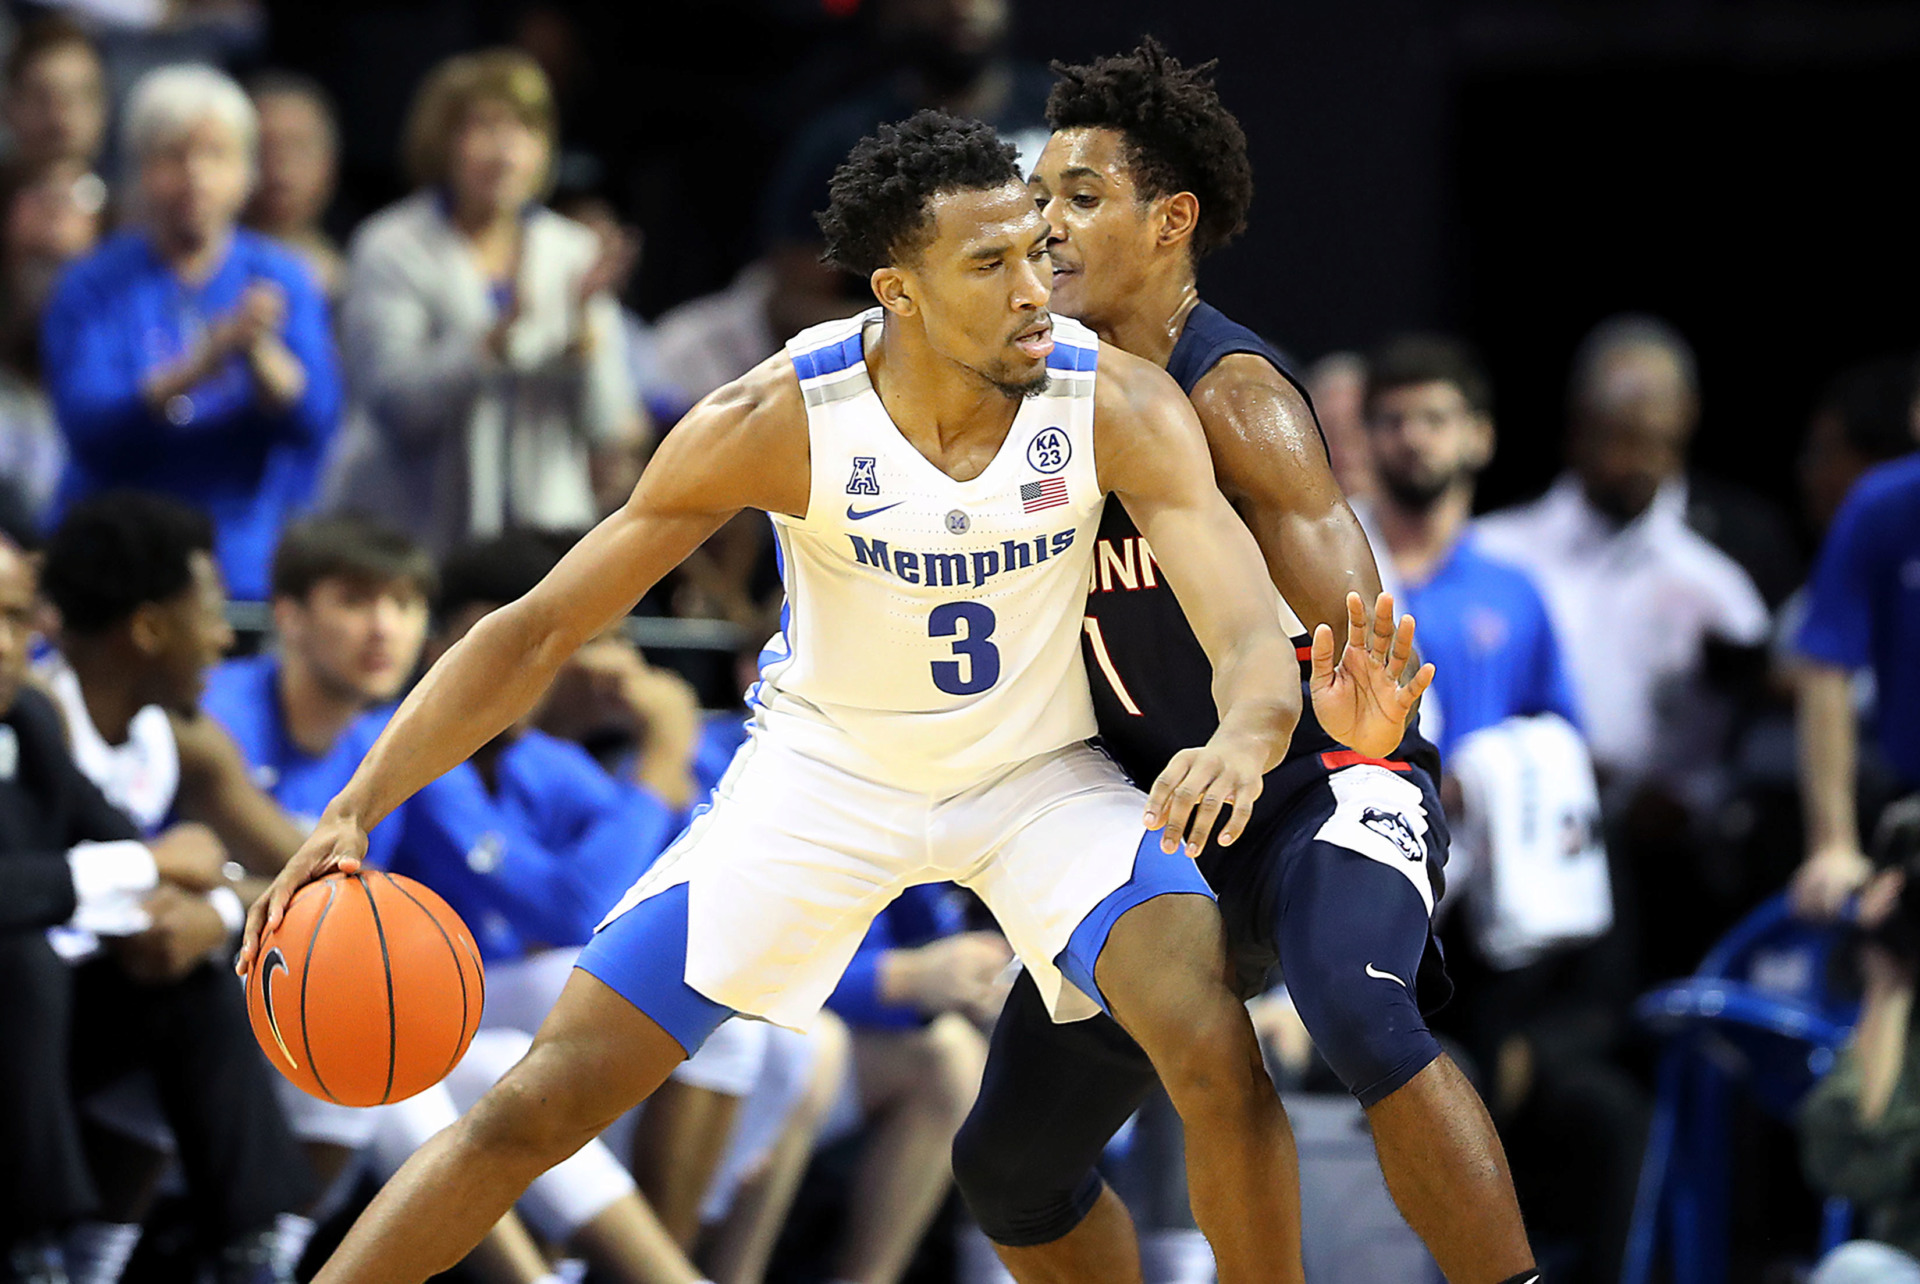 <strong>Memphis guard Jeremiah Martin backs off UConn defender Christian Vital in the second half of a 78-71 victory over the Huskies on Sunday, Feb. 10.</strong> (Patrick Lantrip/Daily Memphian)